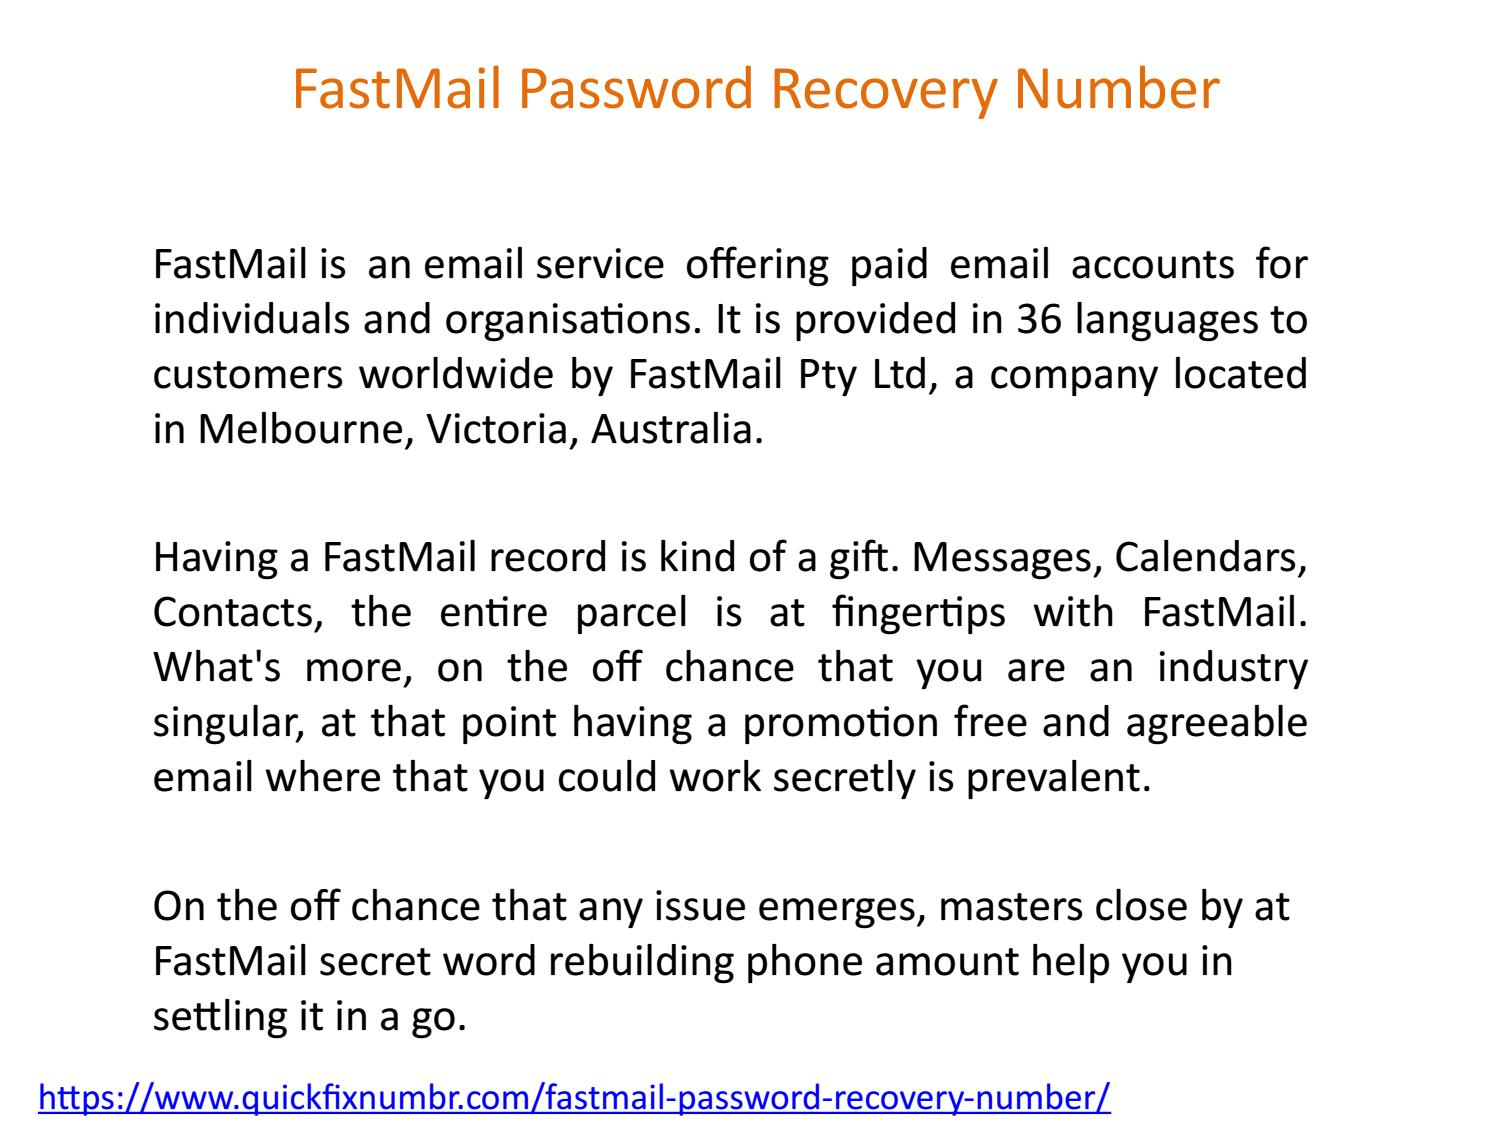 FastMail Password Recovery Number by pandianalex - issuu